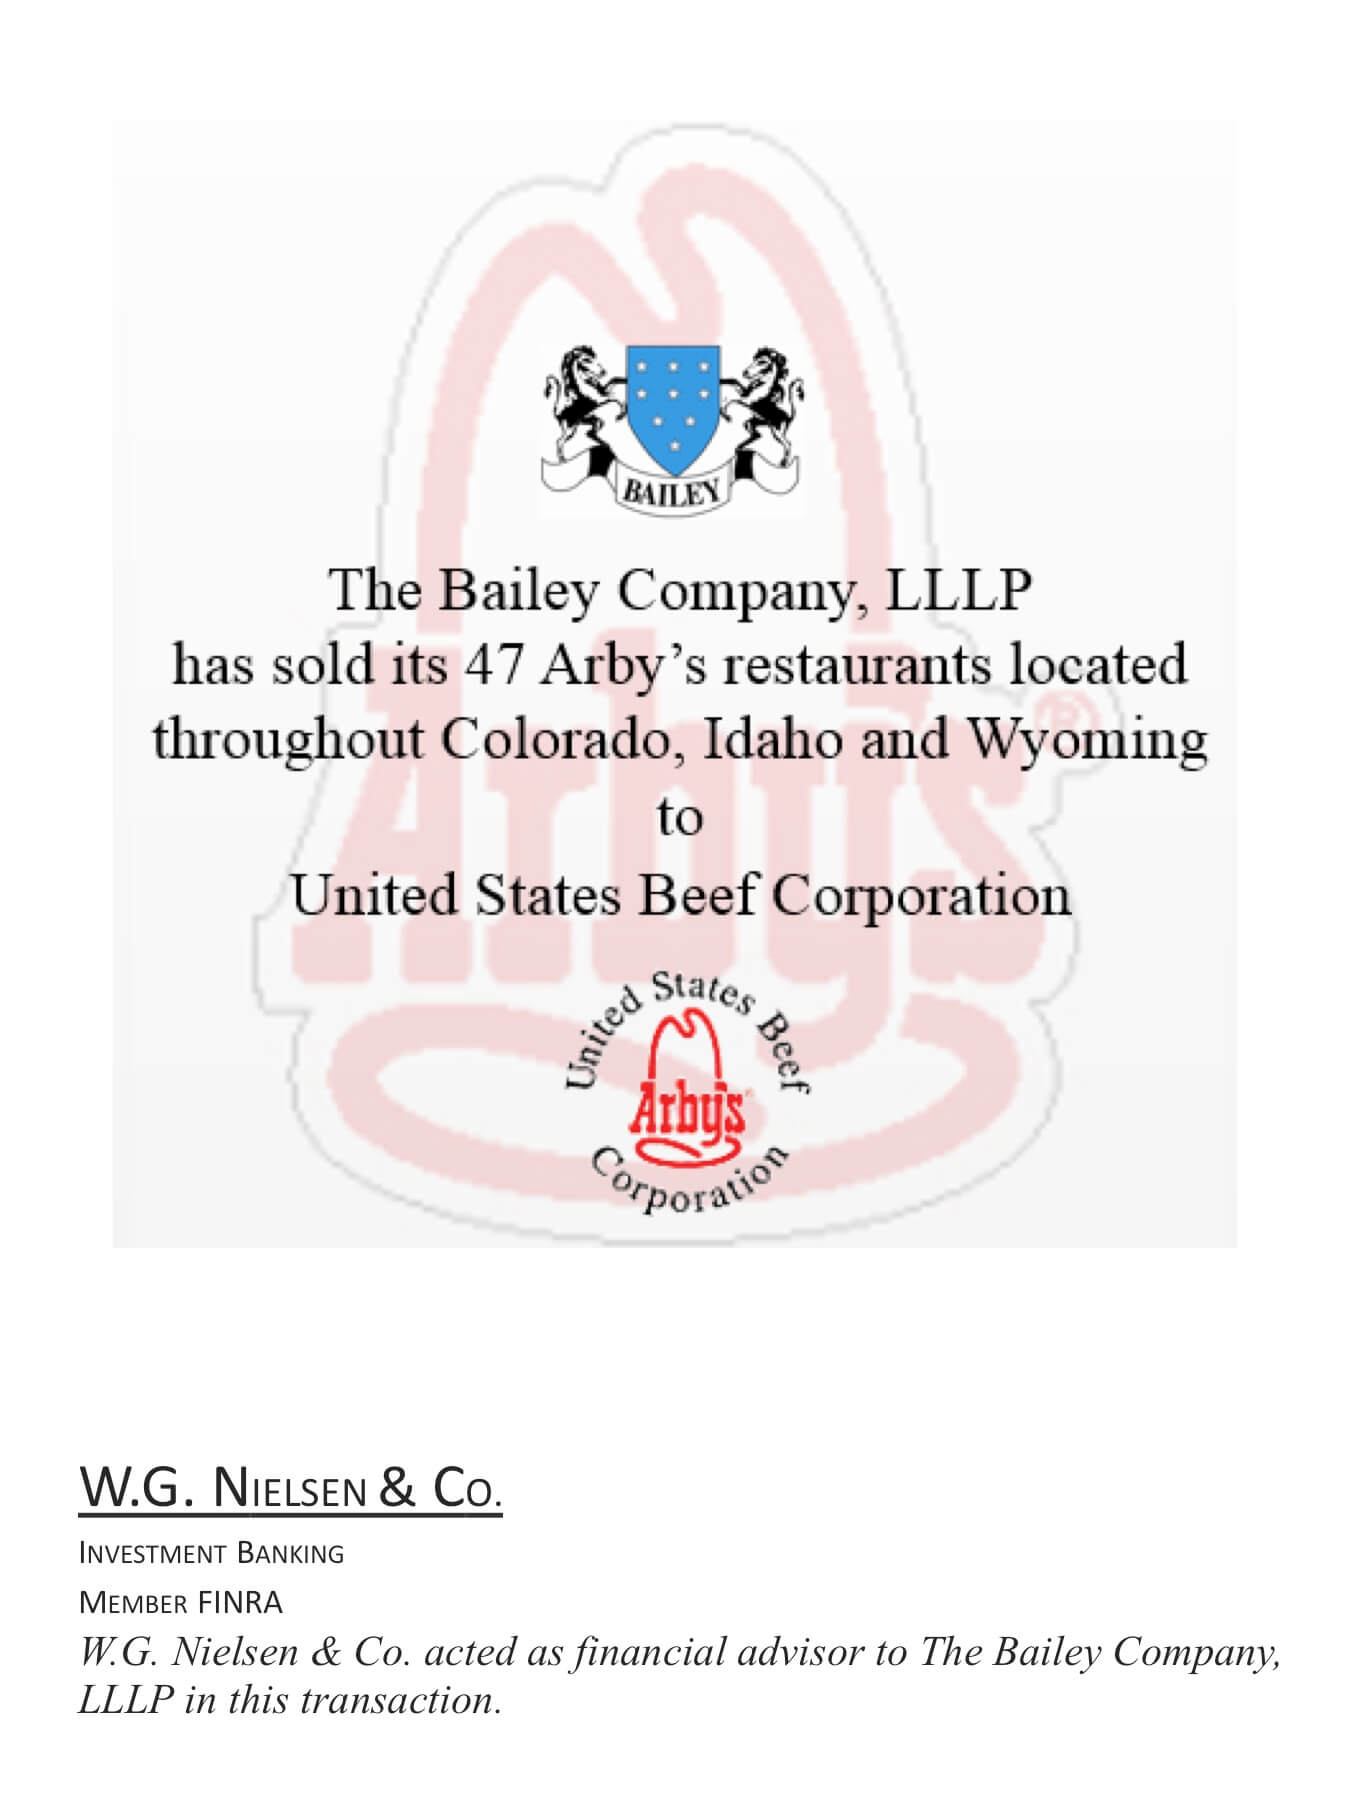 bailey company investment banking transaction